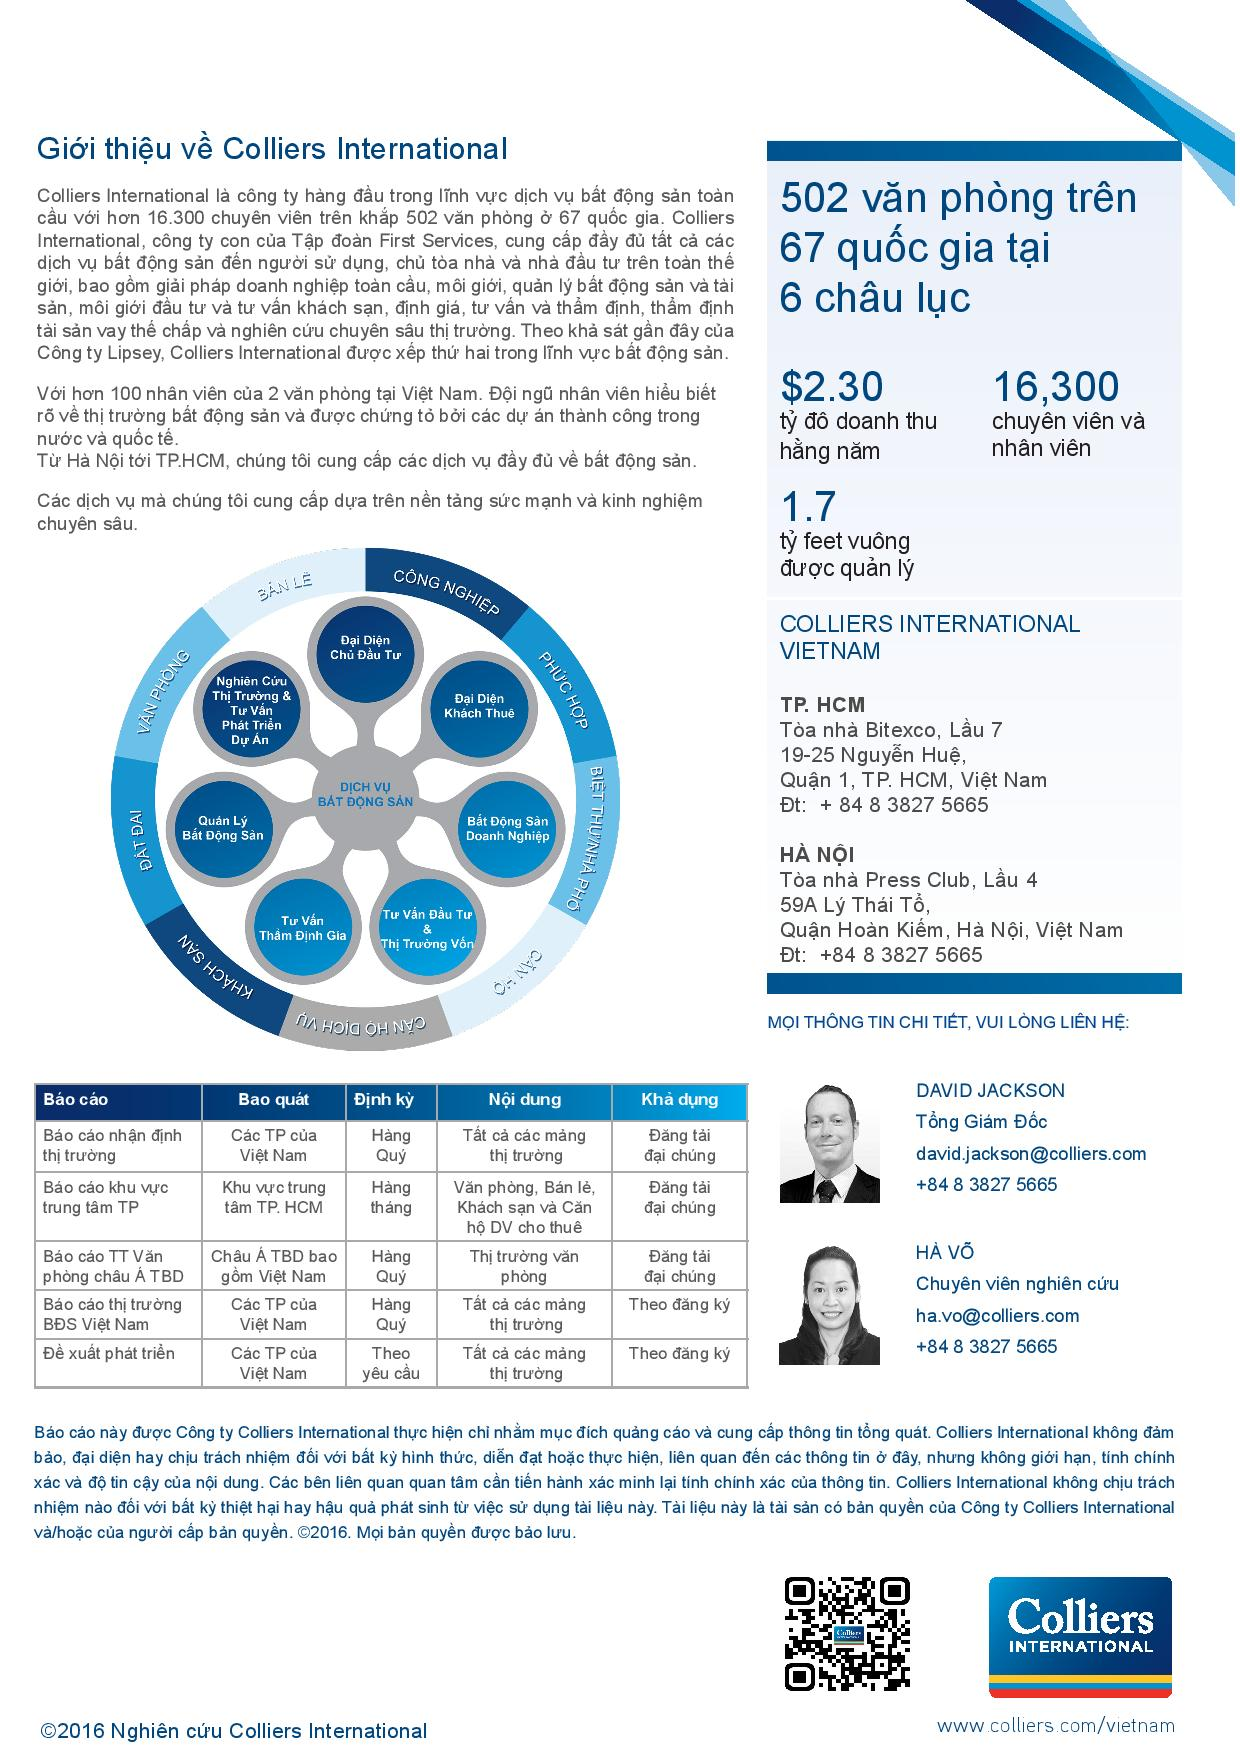 Colliers_HCMC_CBD report_Feb 2016_VIE-page-012